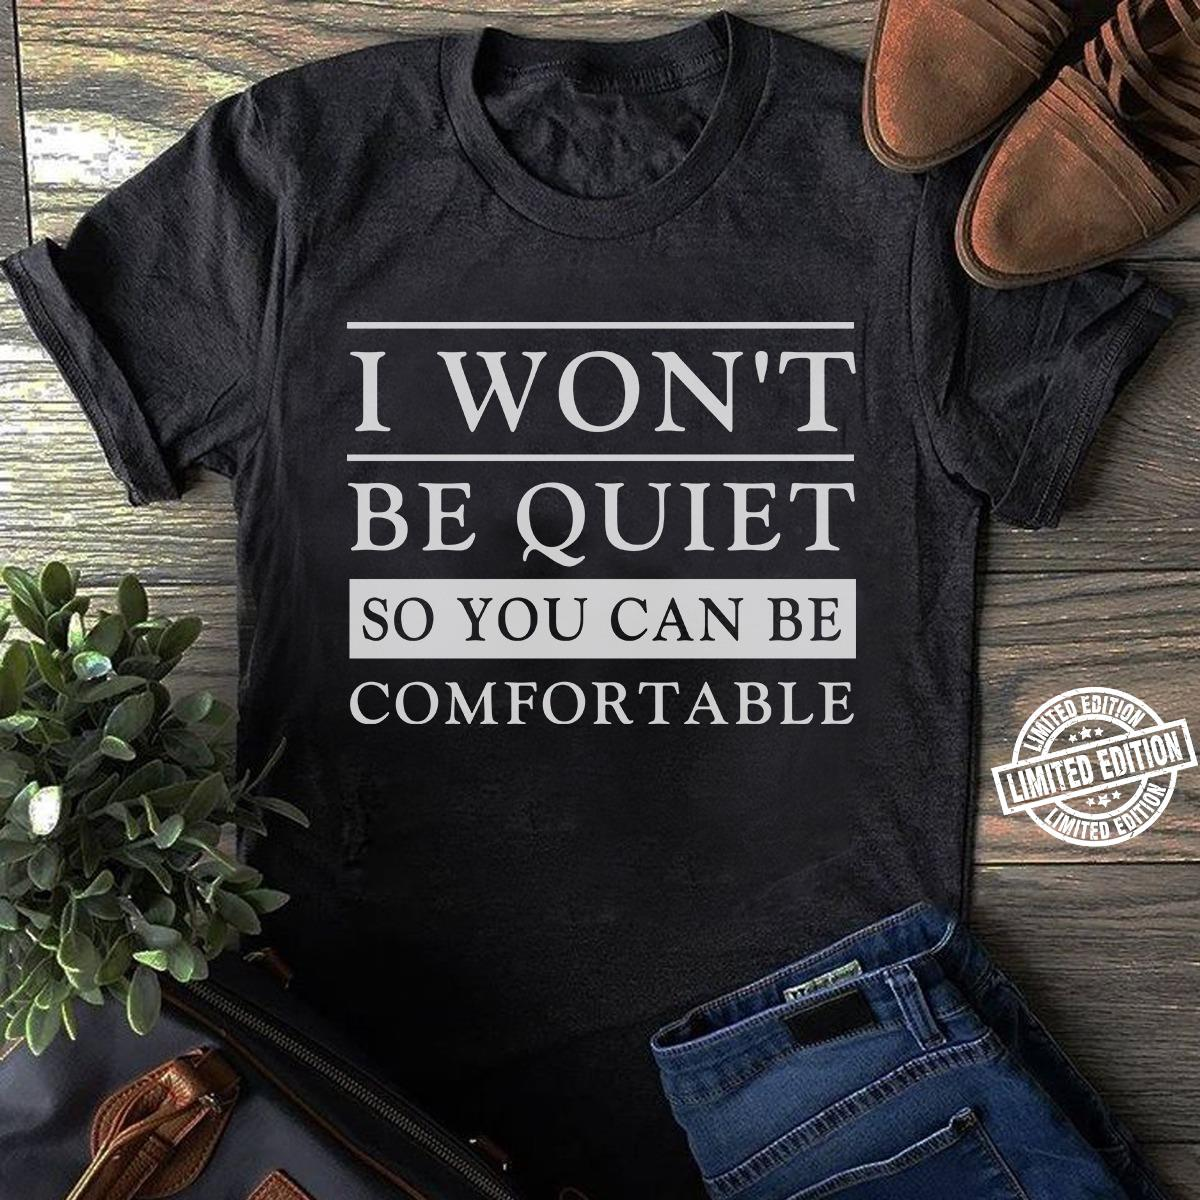 I won't be quite so you can be comfortale shirt